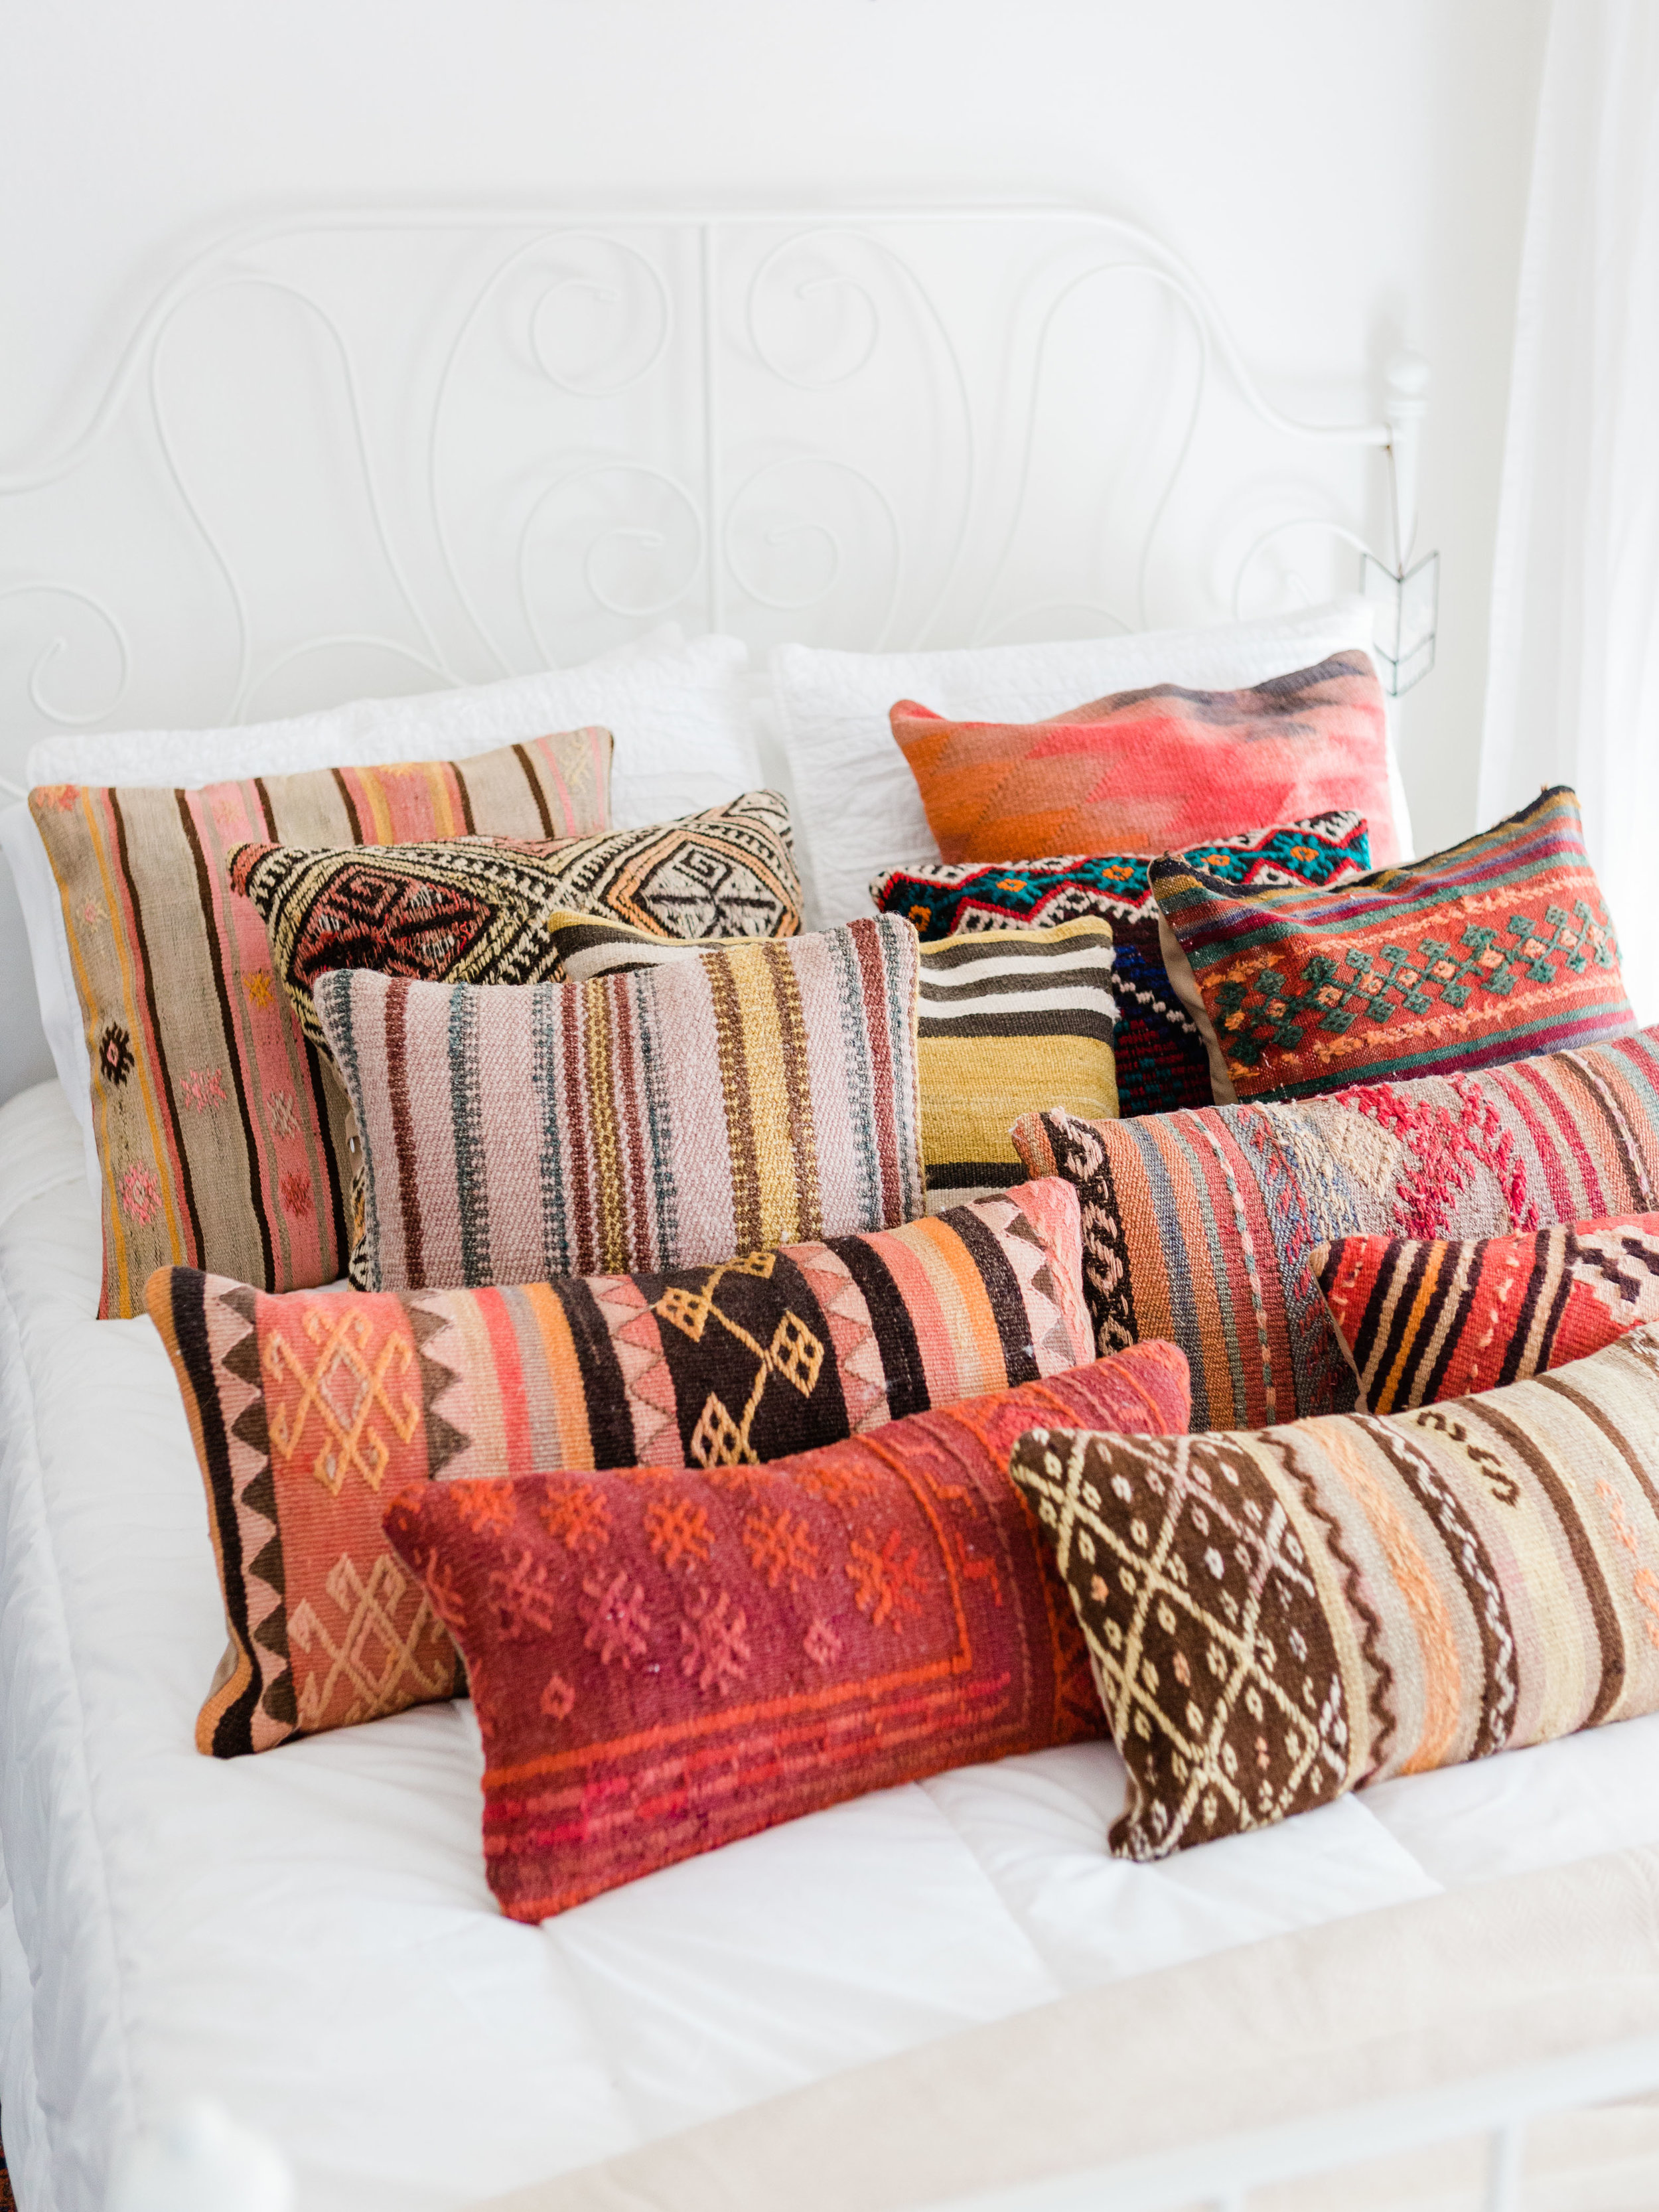 kilim pillow covers from turkey at foragedhome.com